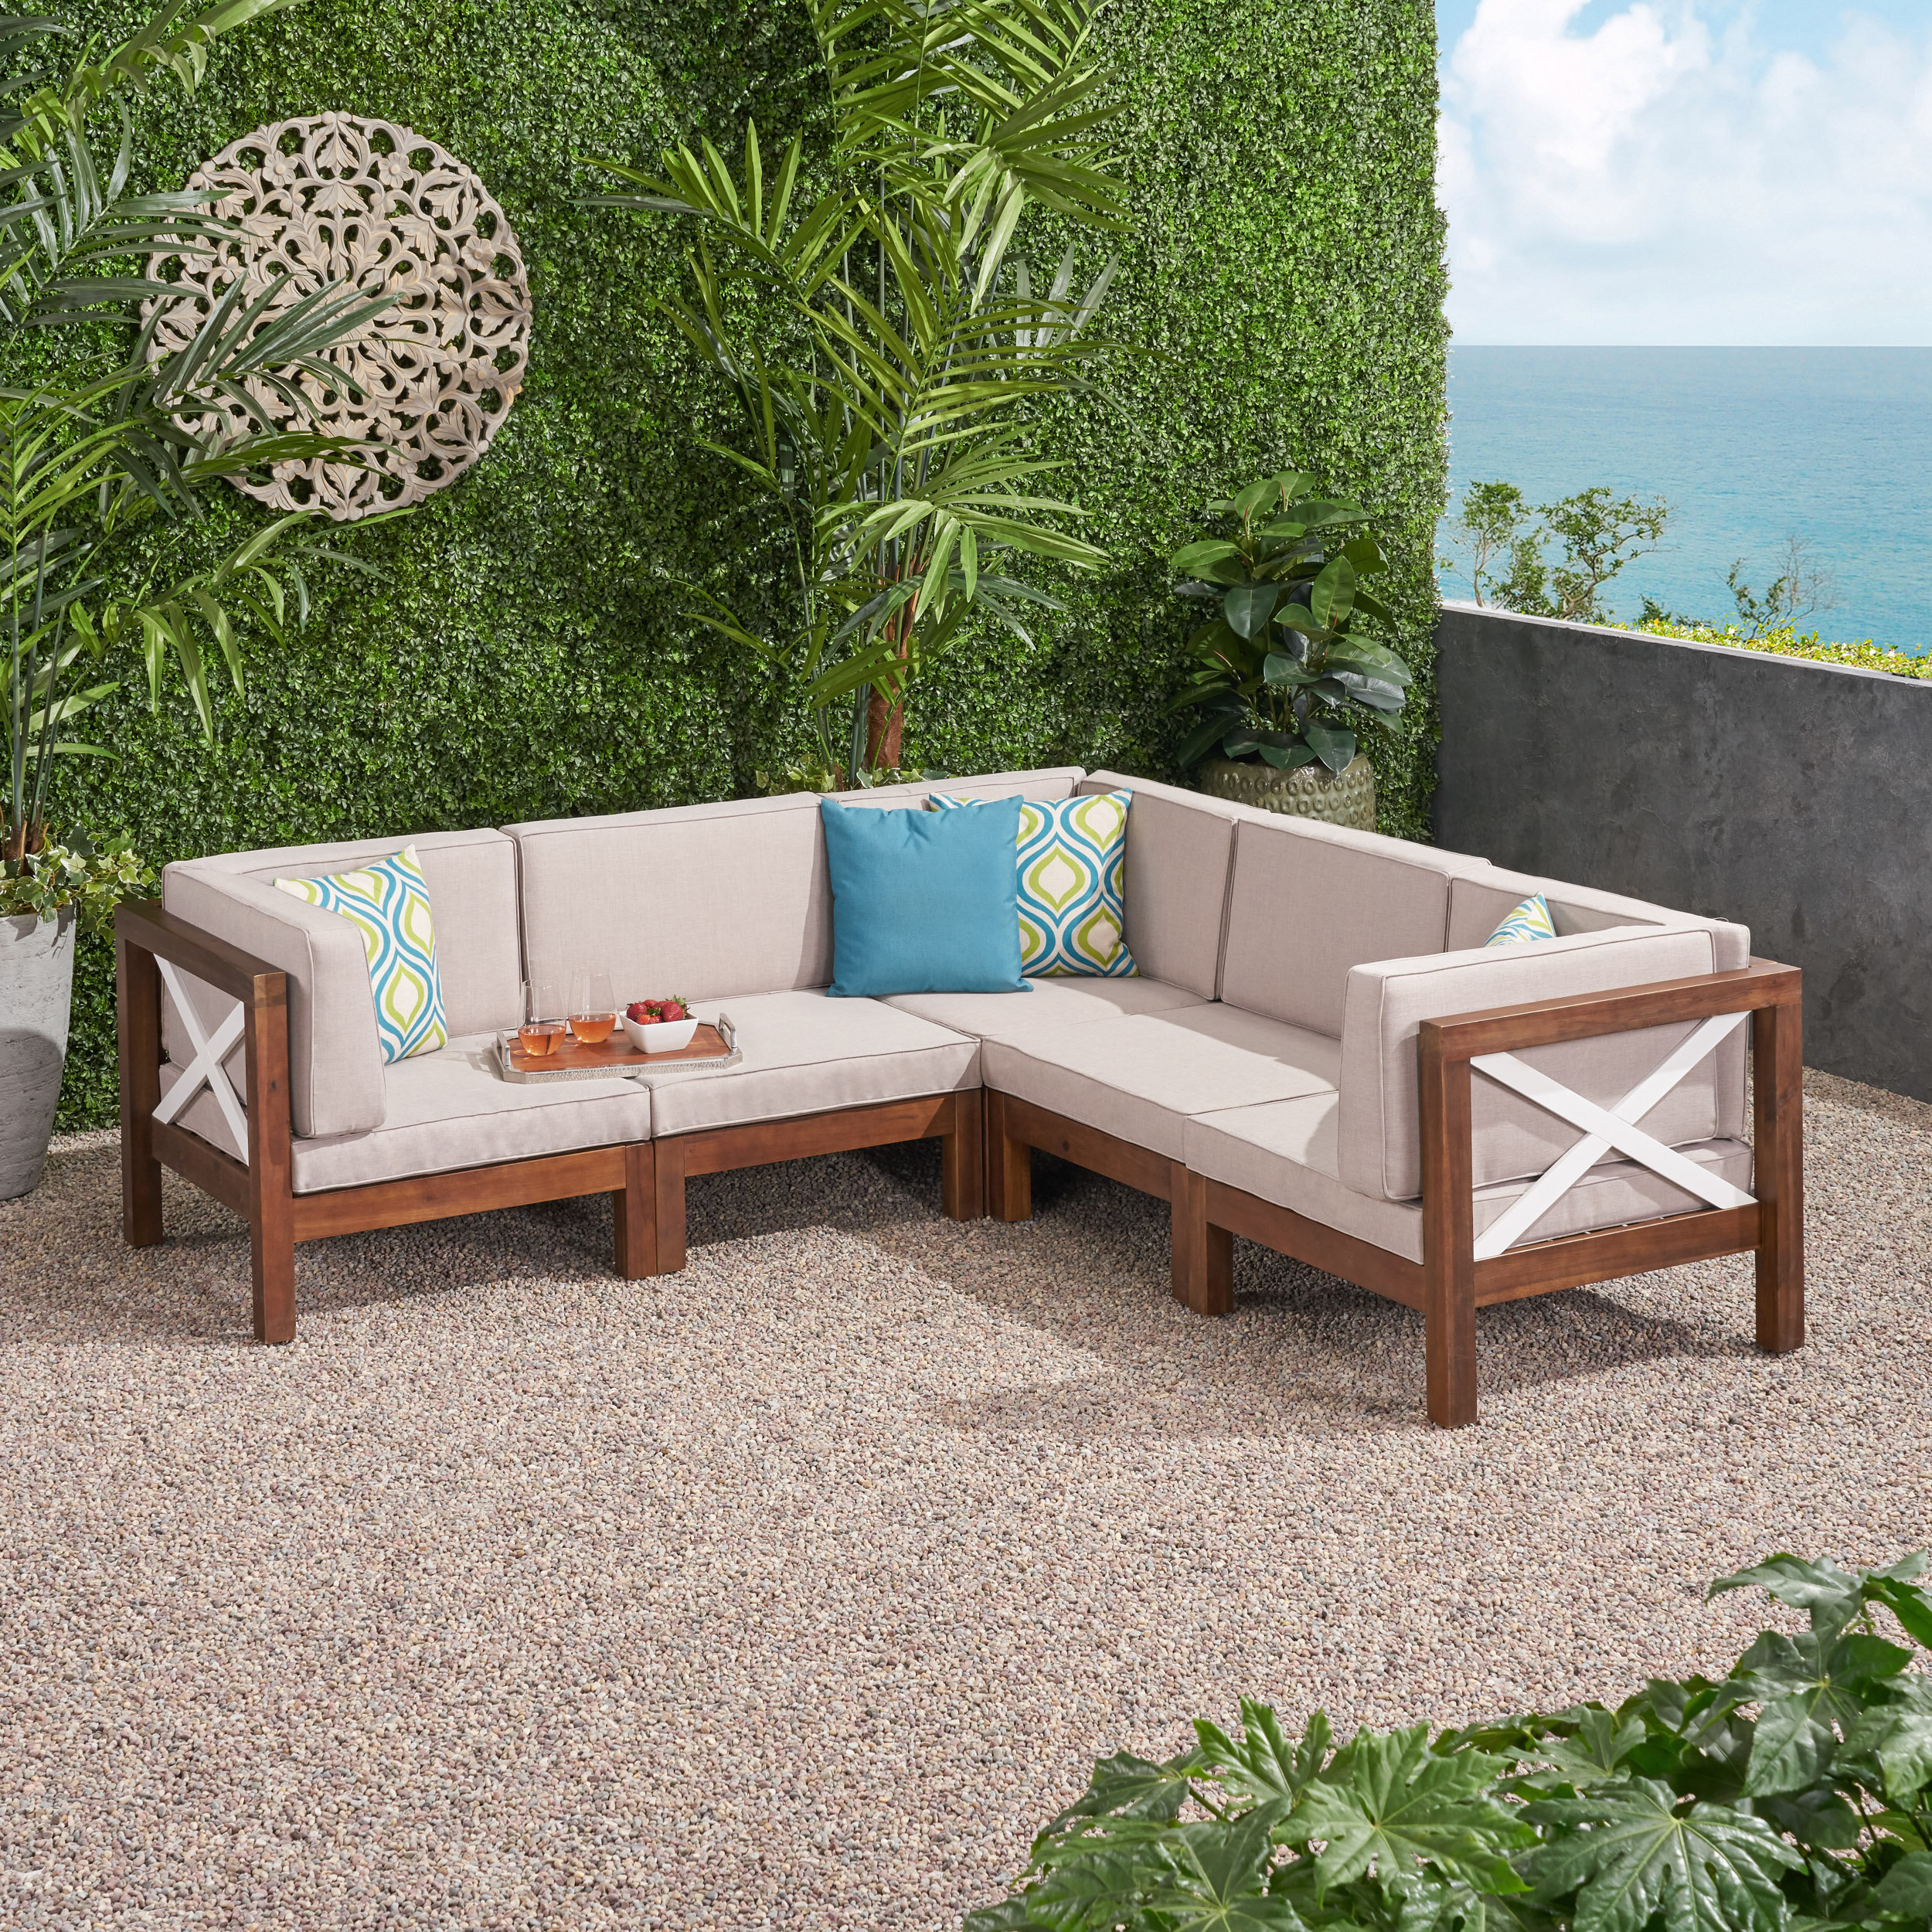 Greta Living Patio Sectionals With Cushions With Well Liked Breakwater Bay Patel Outdoor Patio Sectional With Cushions (View 2 of 20)